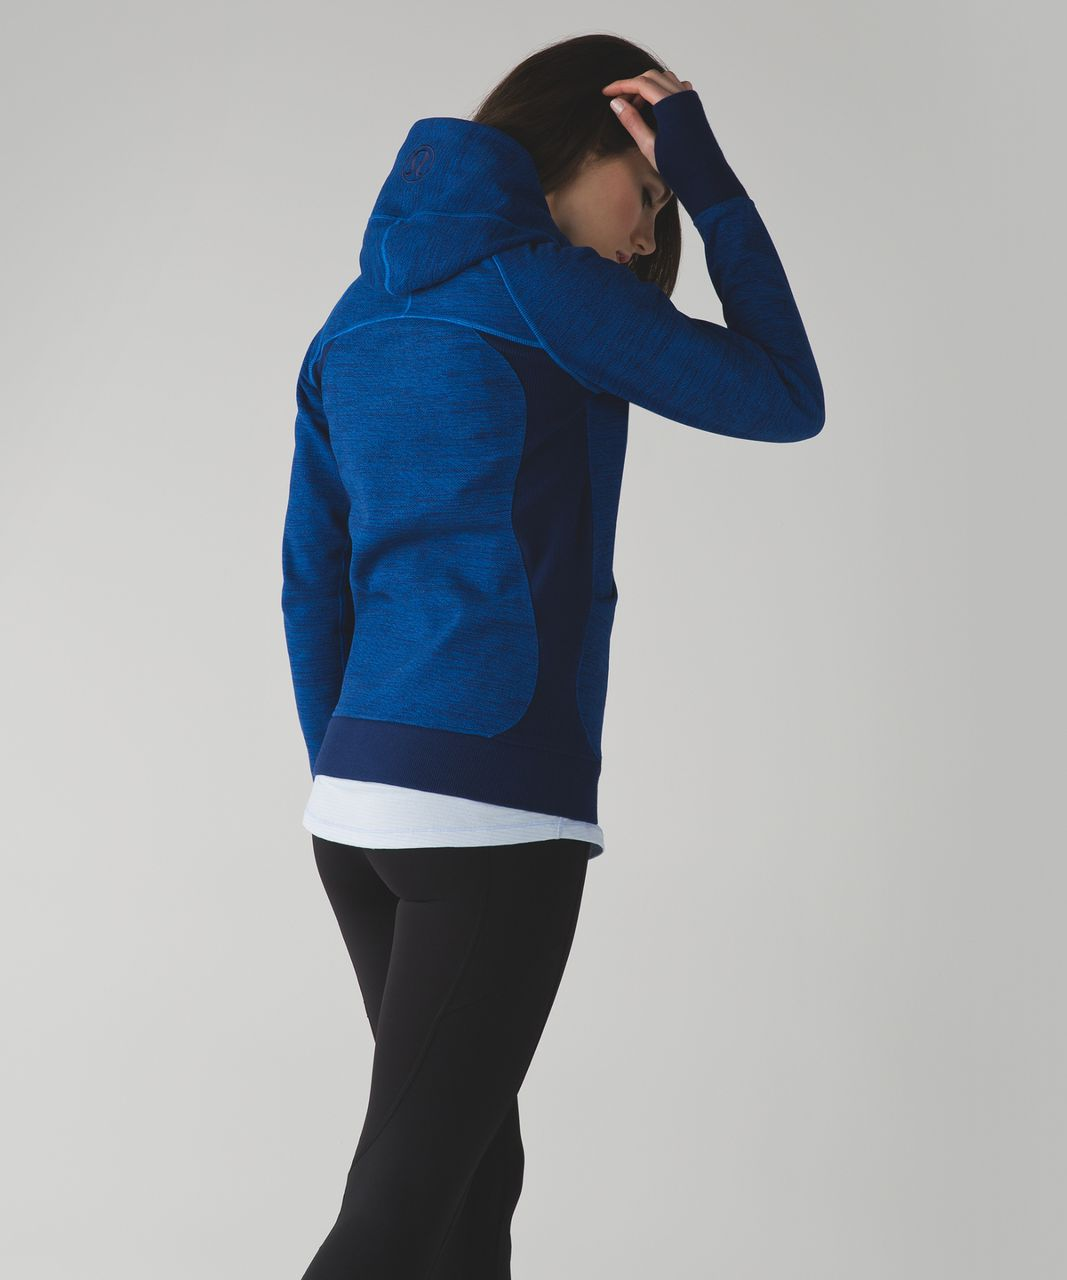 Lululemon Scuba Hoodie III - Commuter Denim Lakeside Blue Hero Blue / Hero Blue